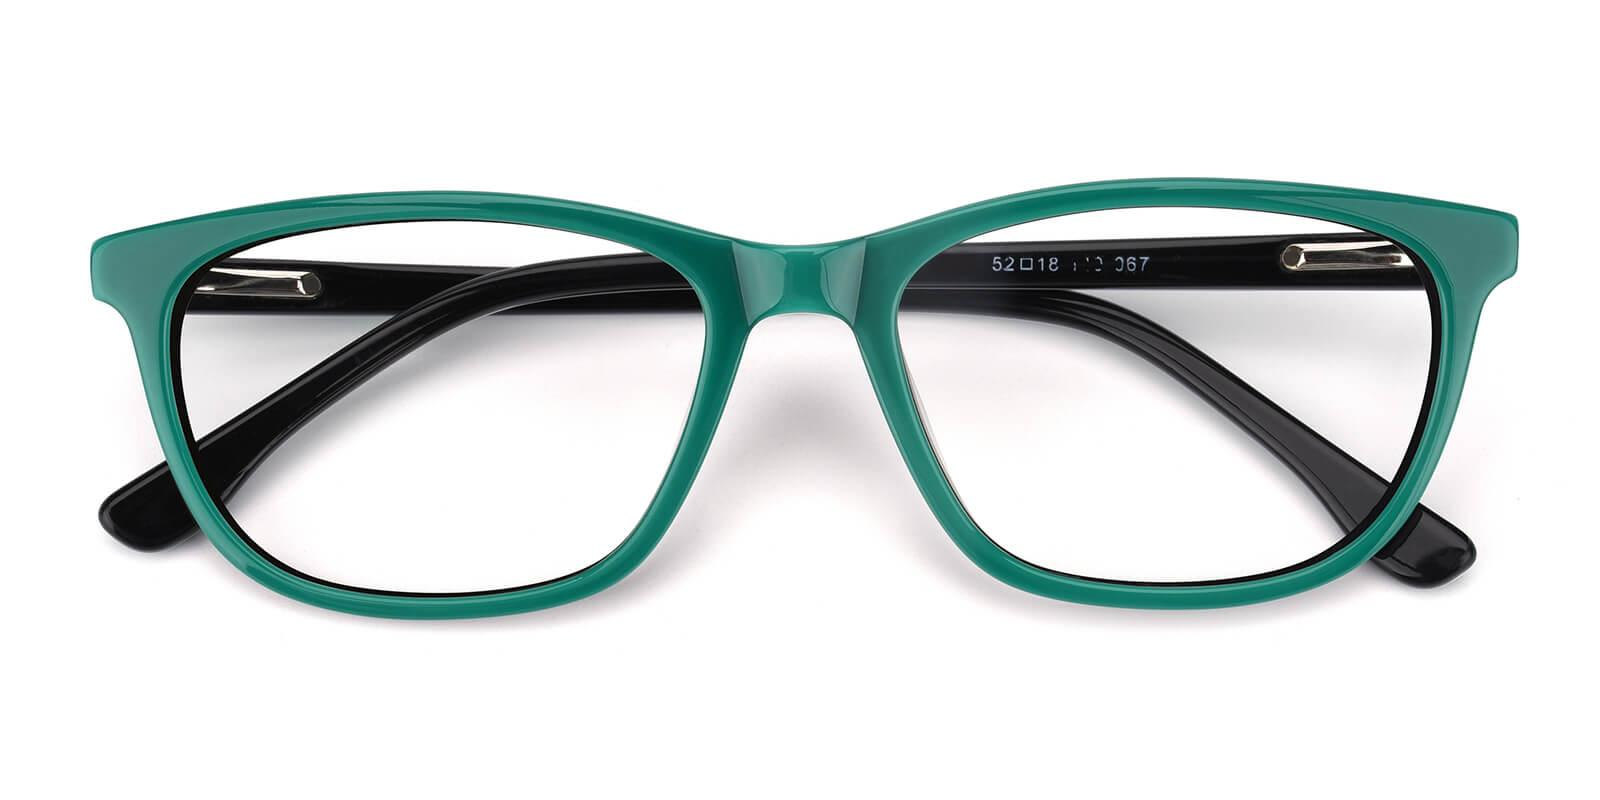 Emblem-Green-Square / Cat-Acetate-Eyeglasses-detail